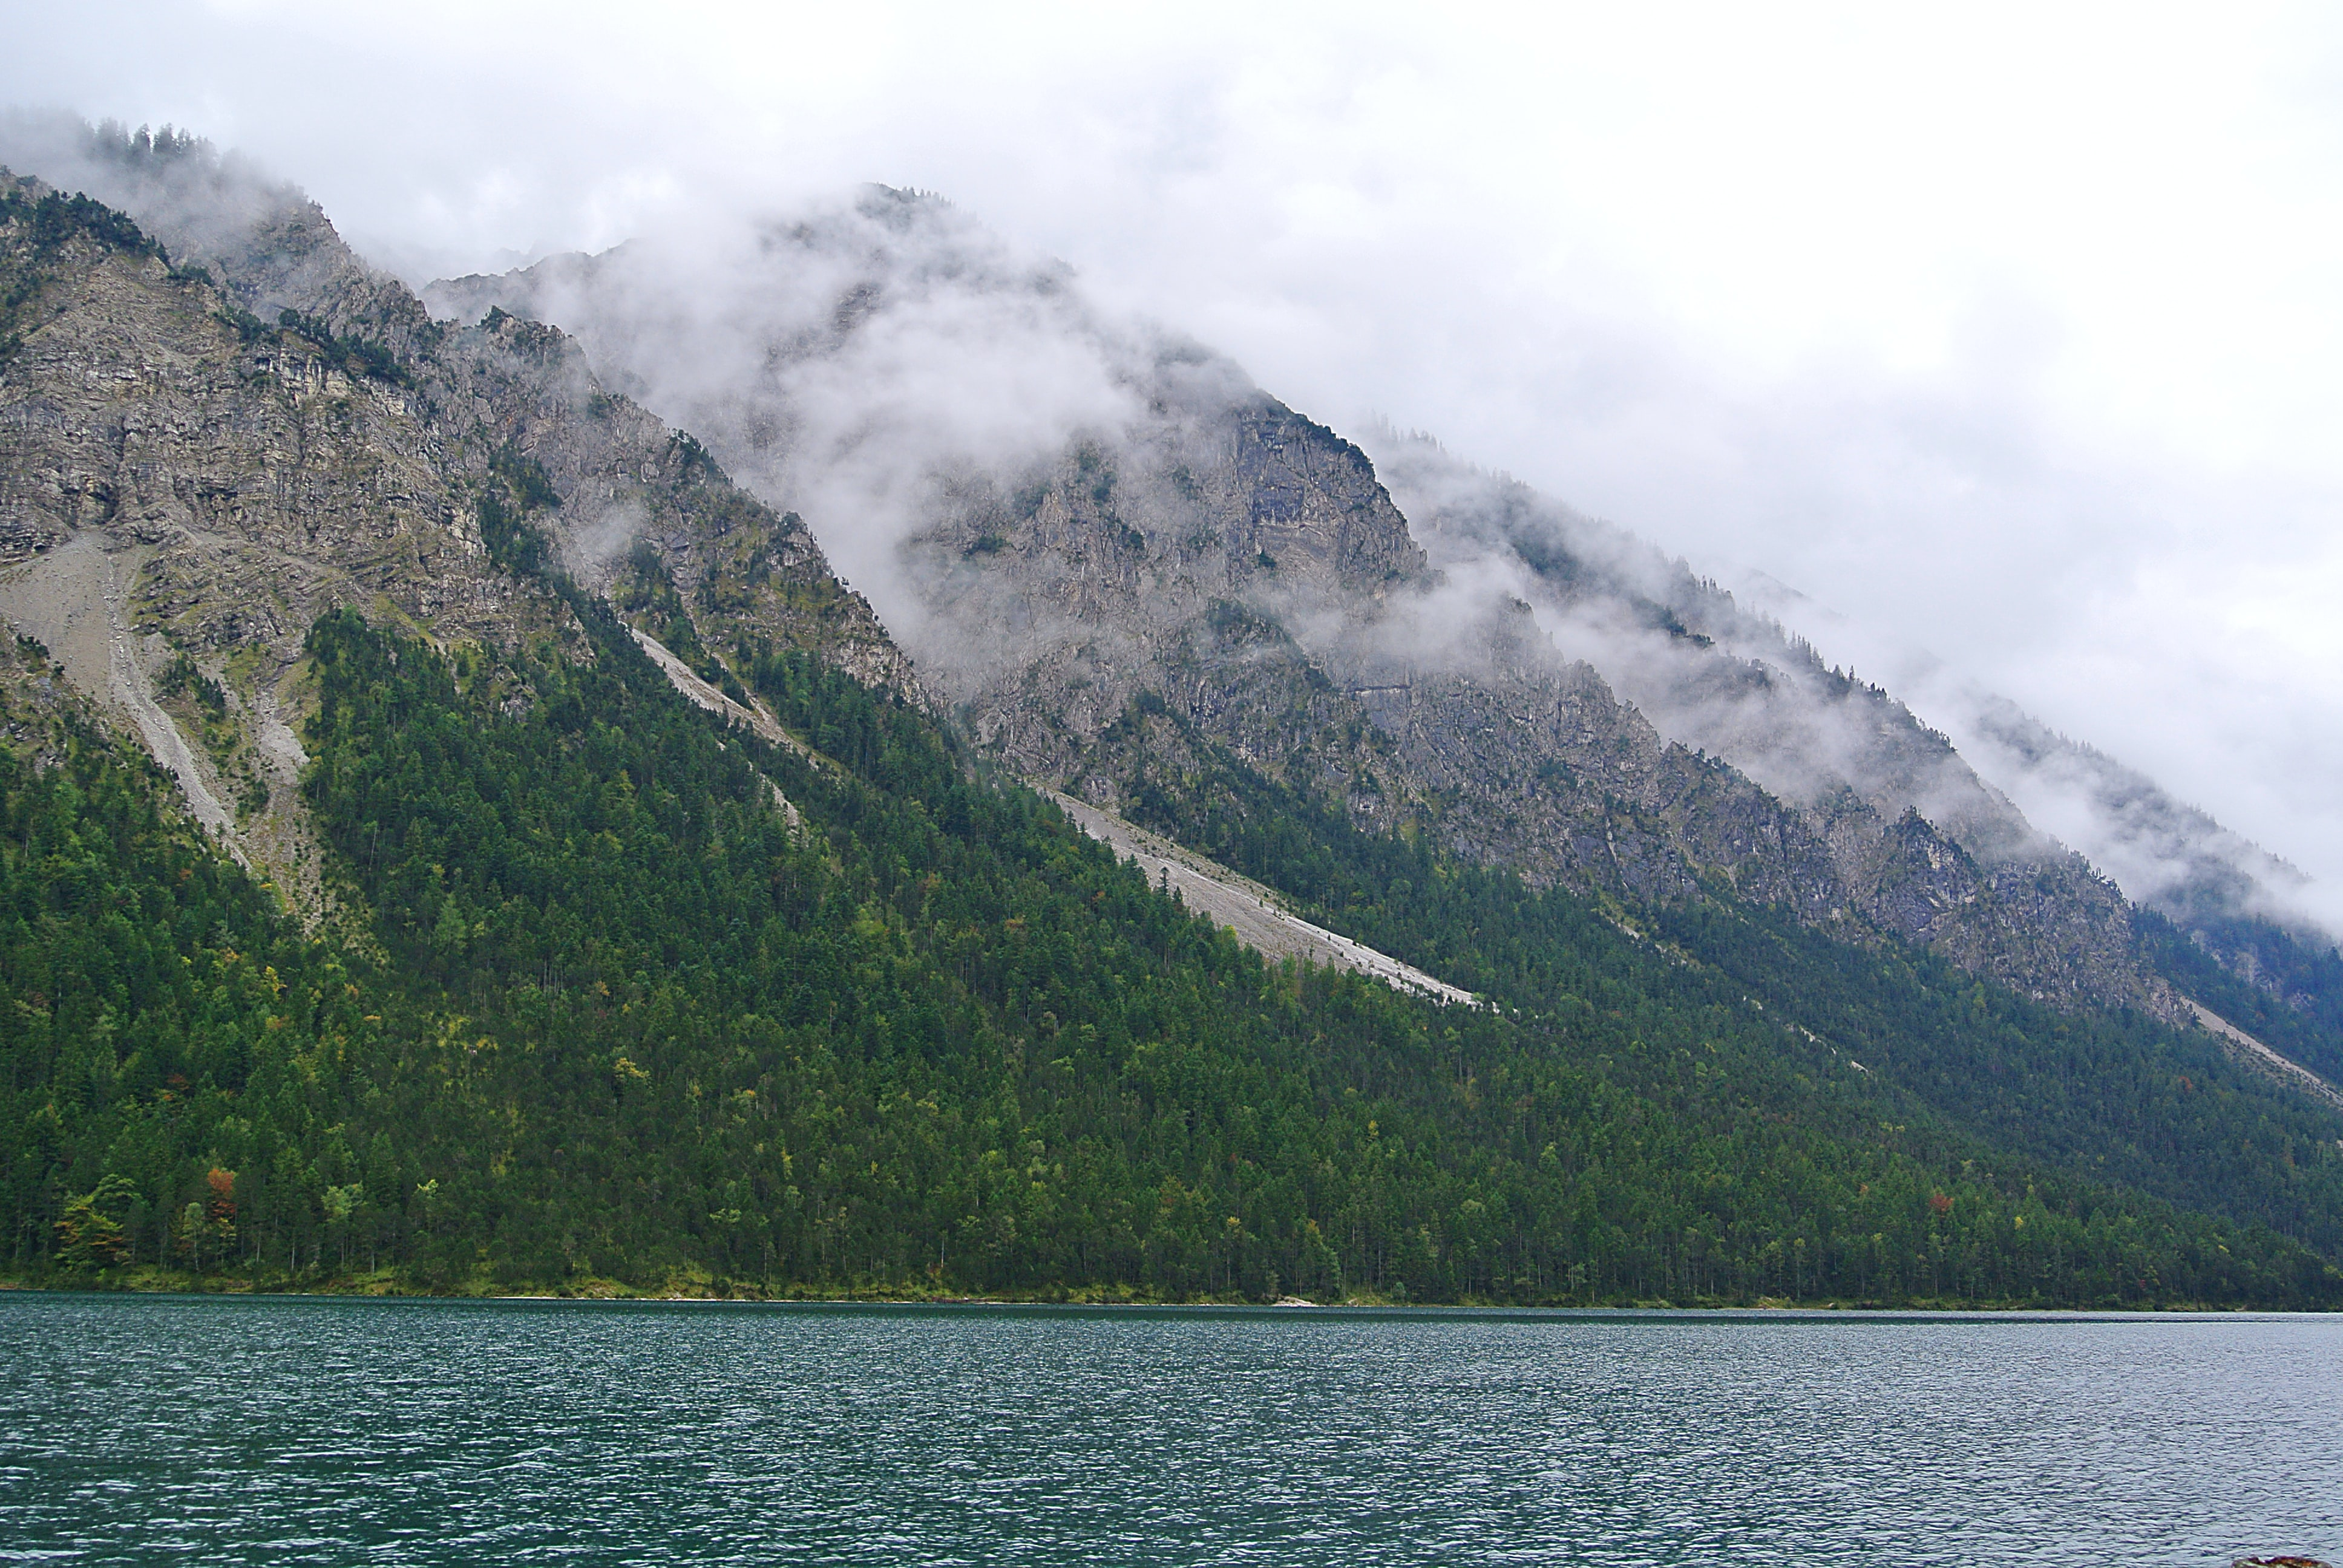 green and gray mountains under white cloudy sky